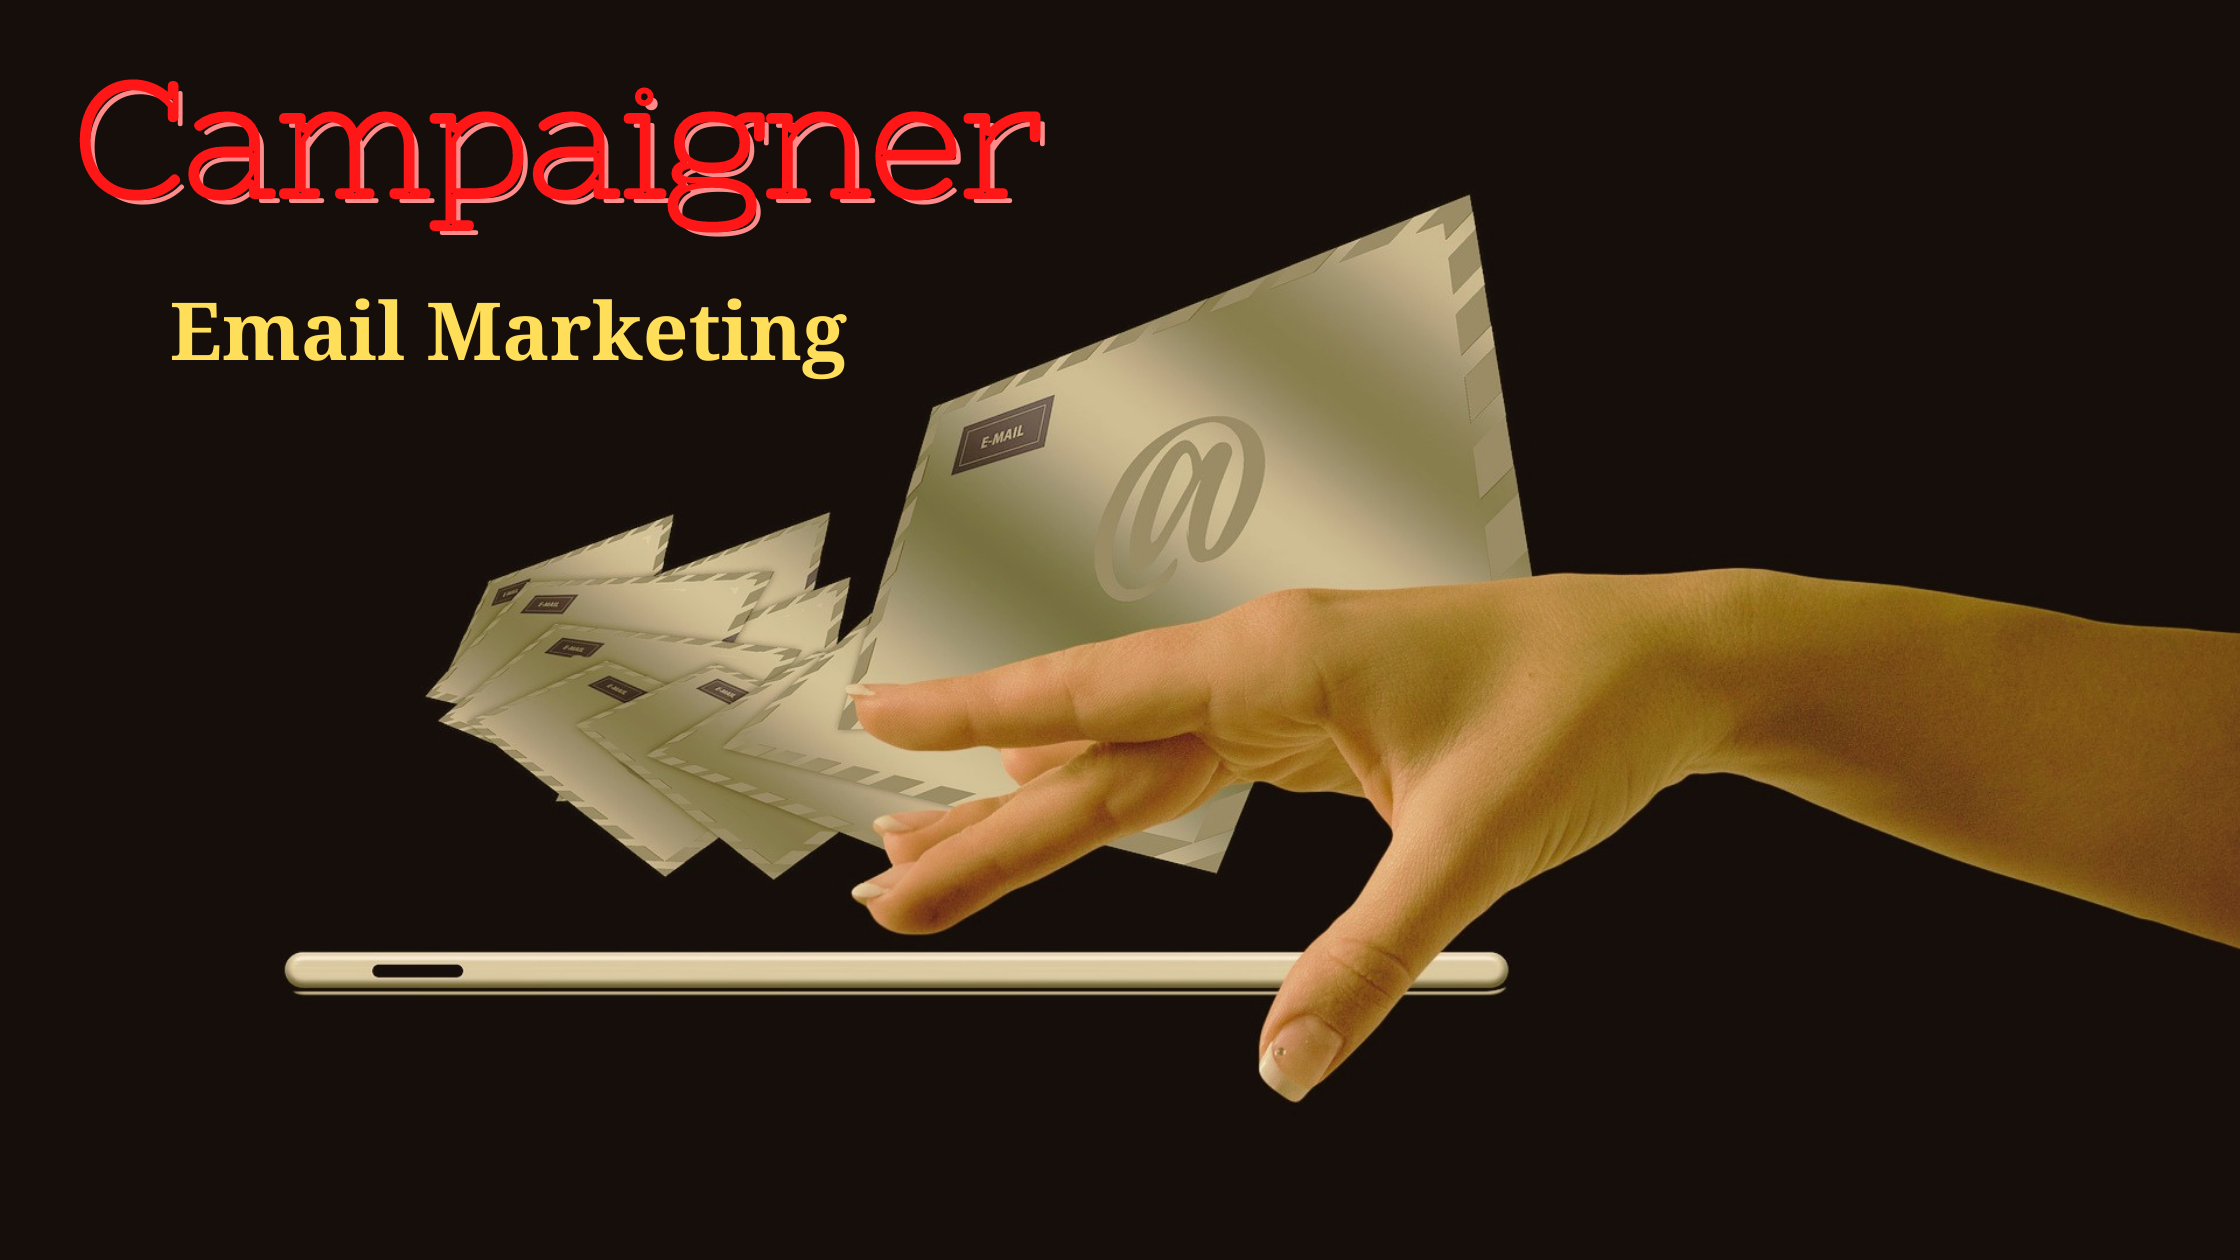 Campaigner Email Marketing Review